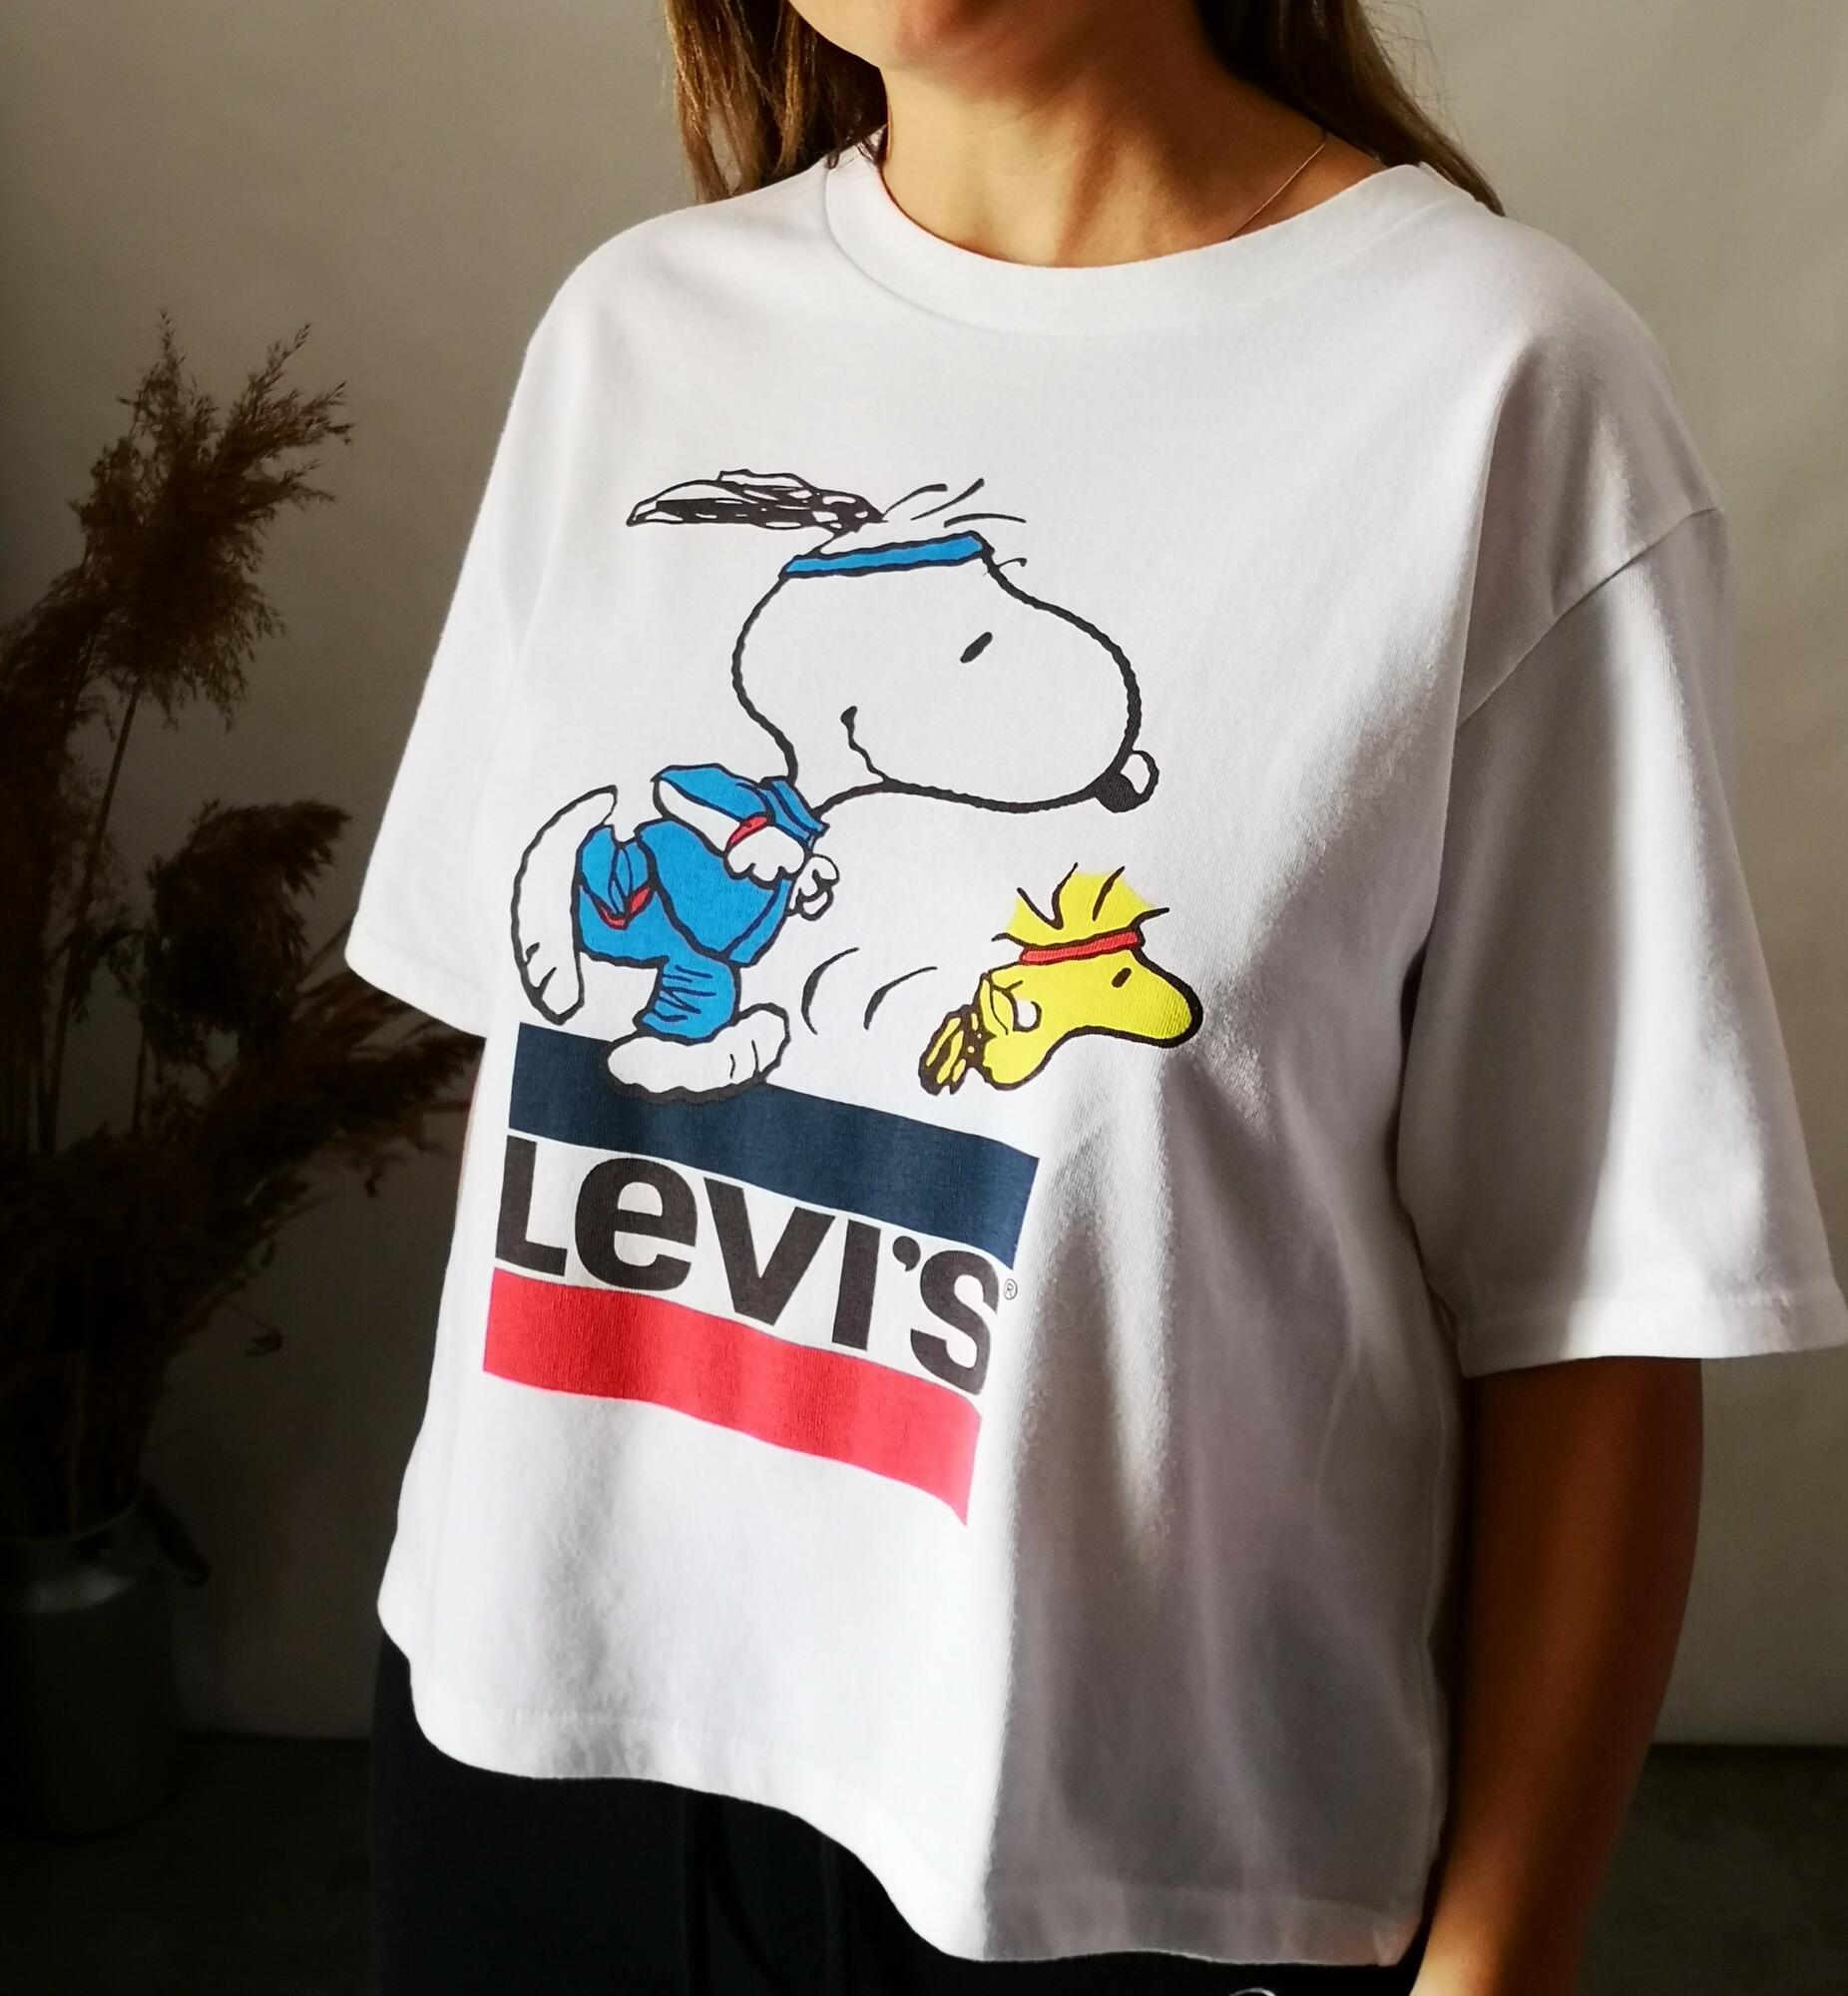 Levi's x Peanuts Relaxed Graphic Tee - Nie byle   JestemSlow.pl